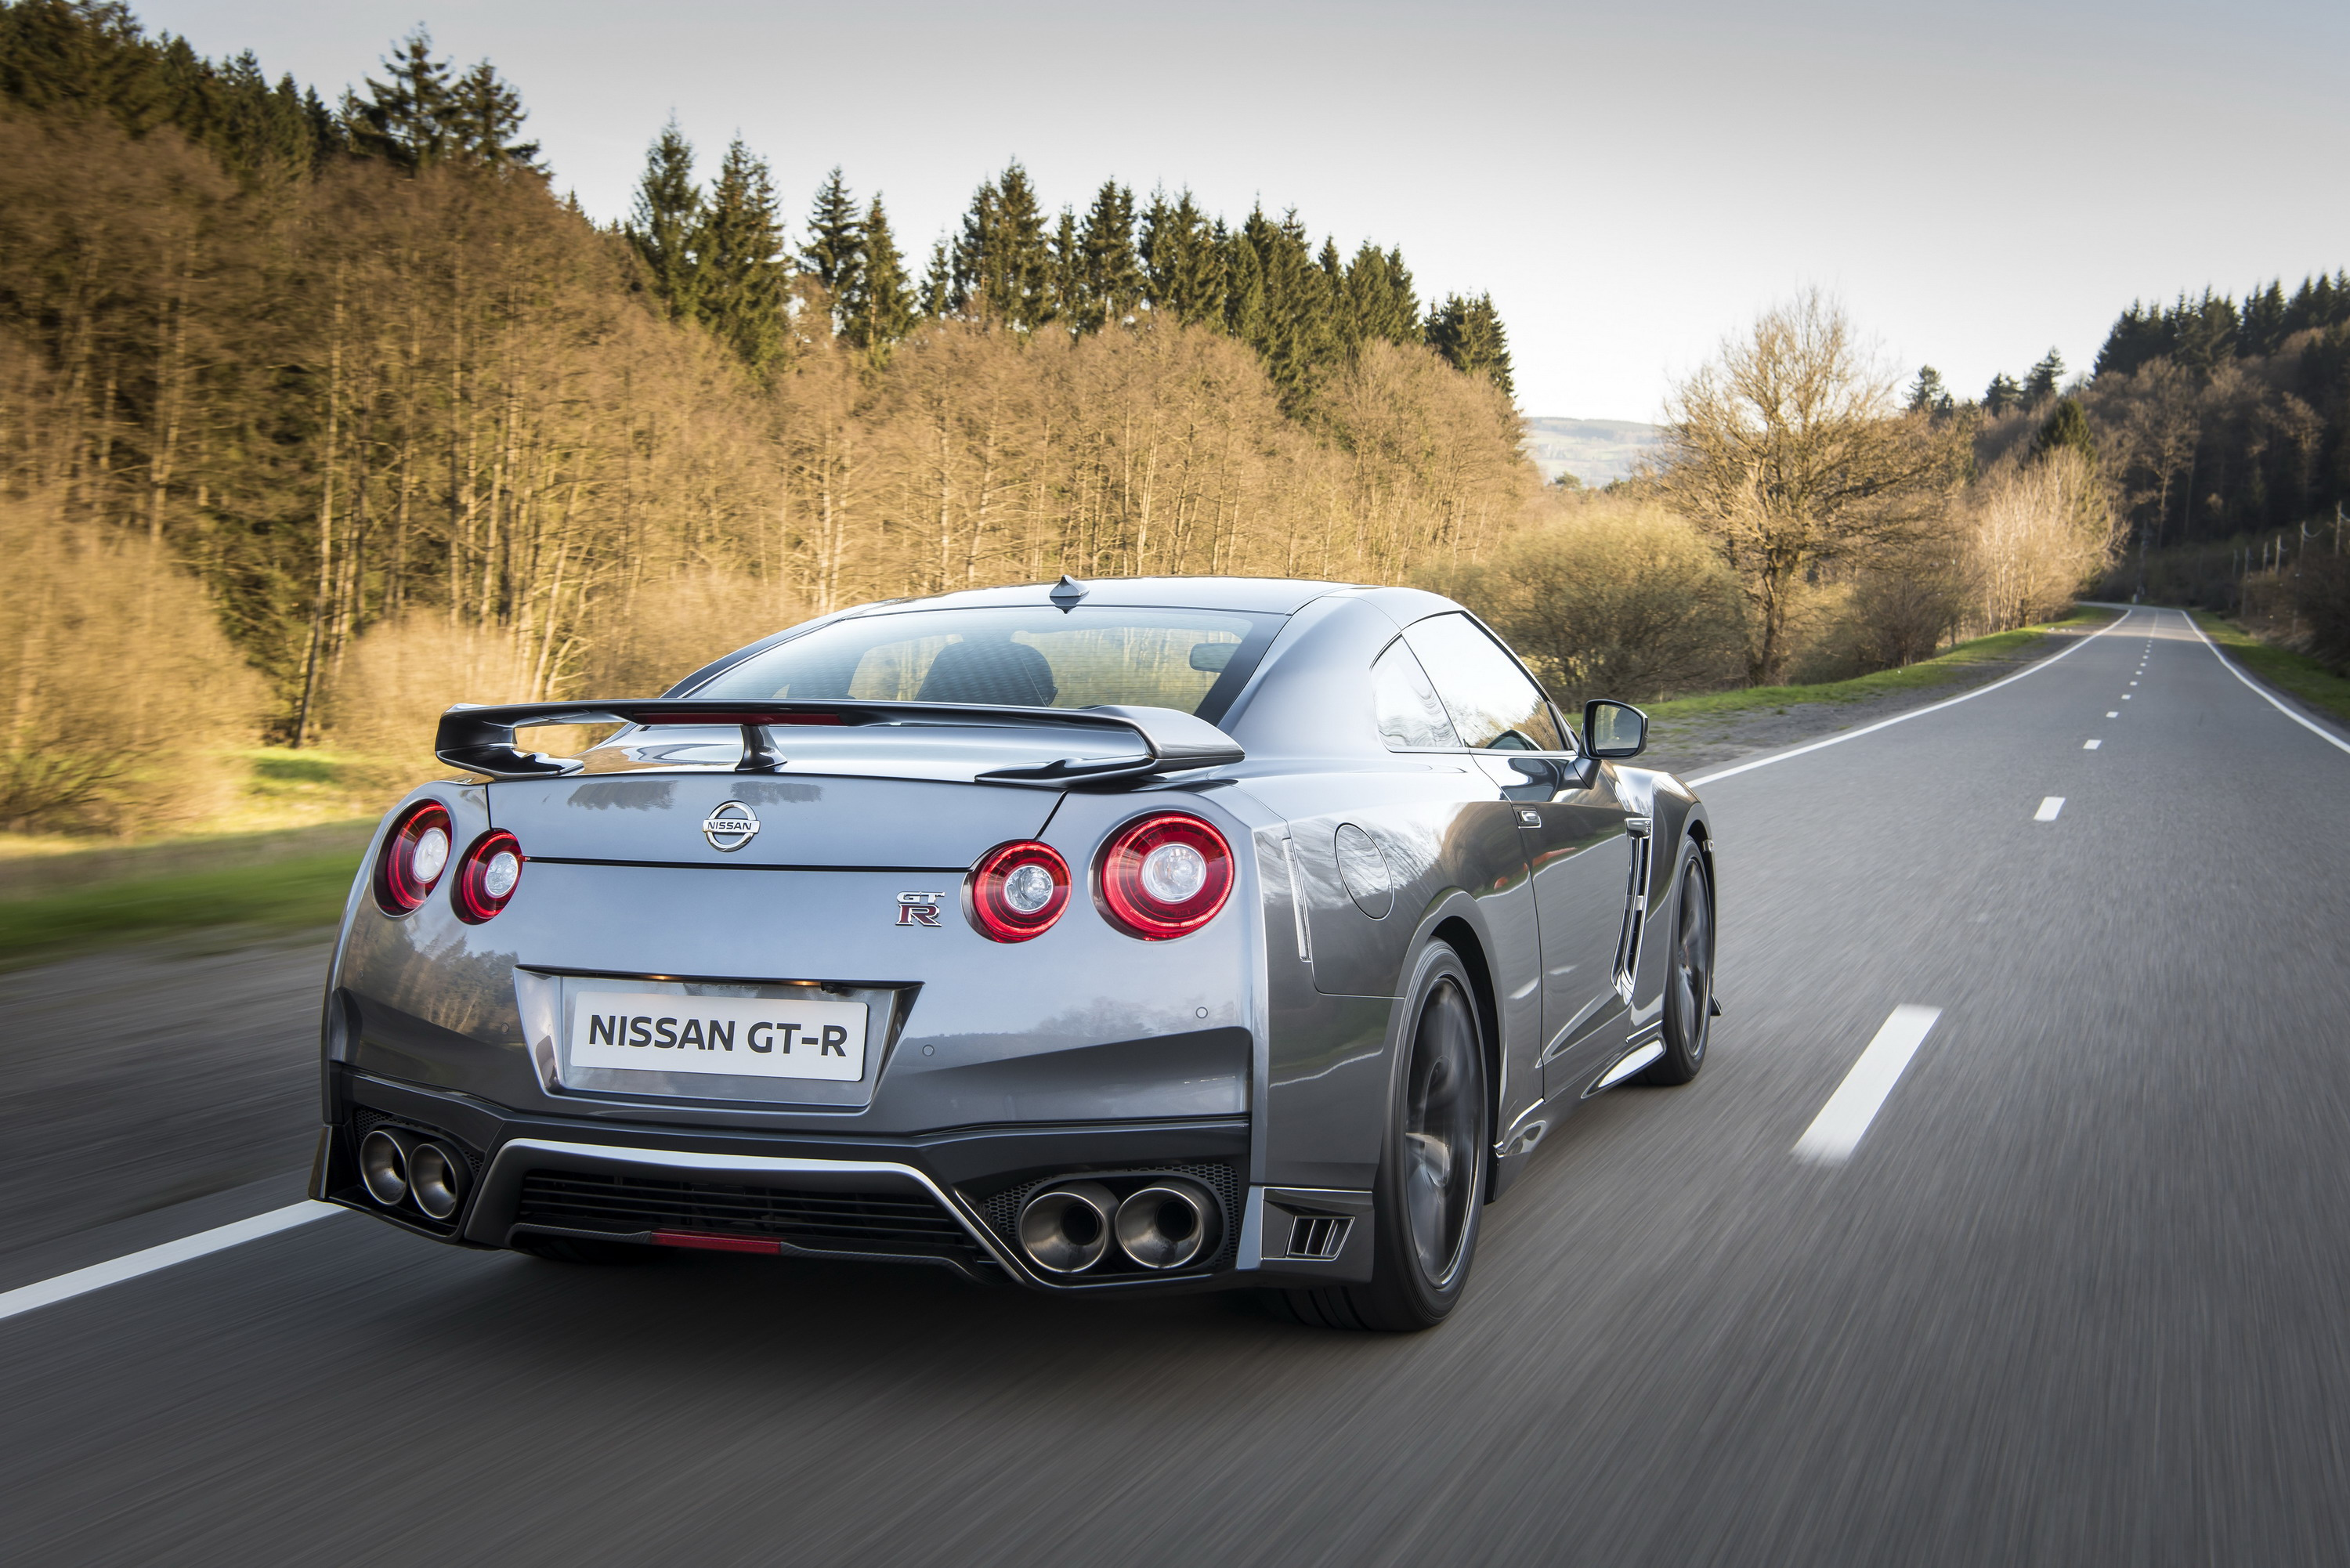 2017 nissan gt-r review - top speed